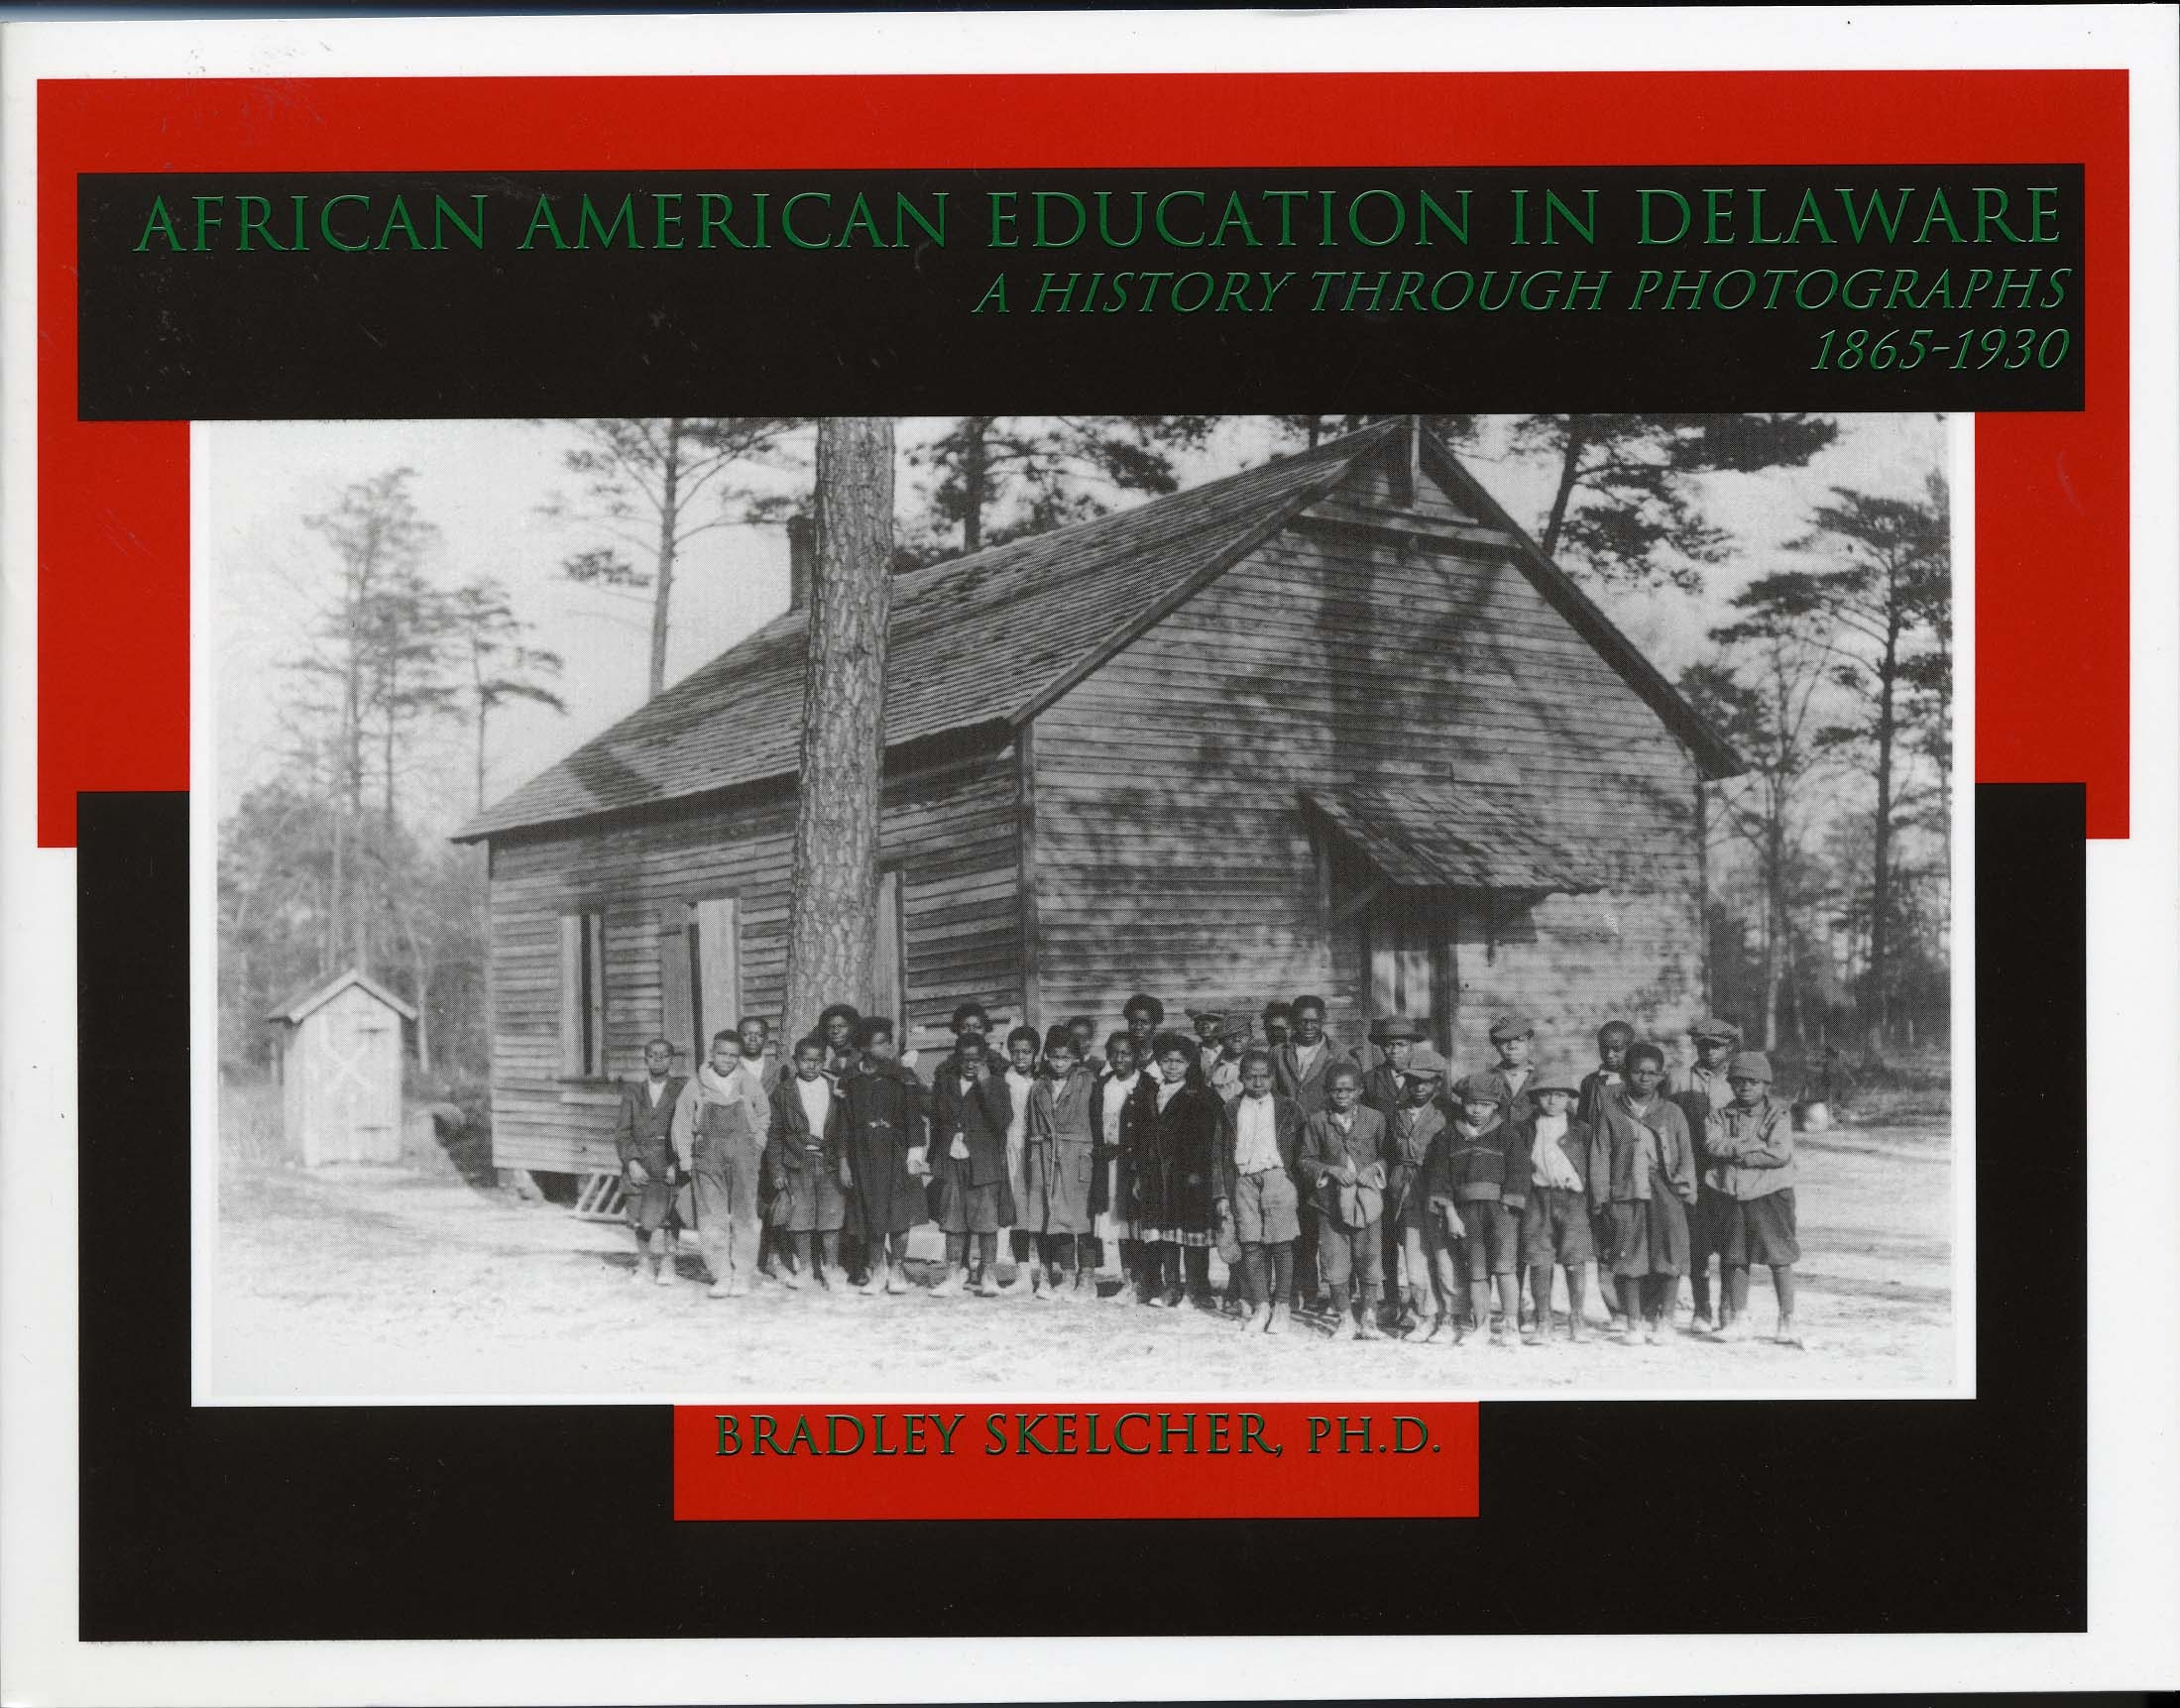 African American Education in Delaware: A History Through Photographs, 1865-1930, by Bradley Skelcher, Second edition 2007, 99 pp., HARDCOVER. Prices reflect the cost of the book PLUS S&H fees of $5.